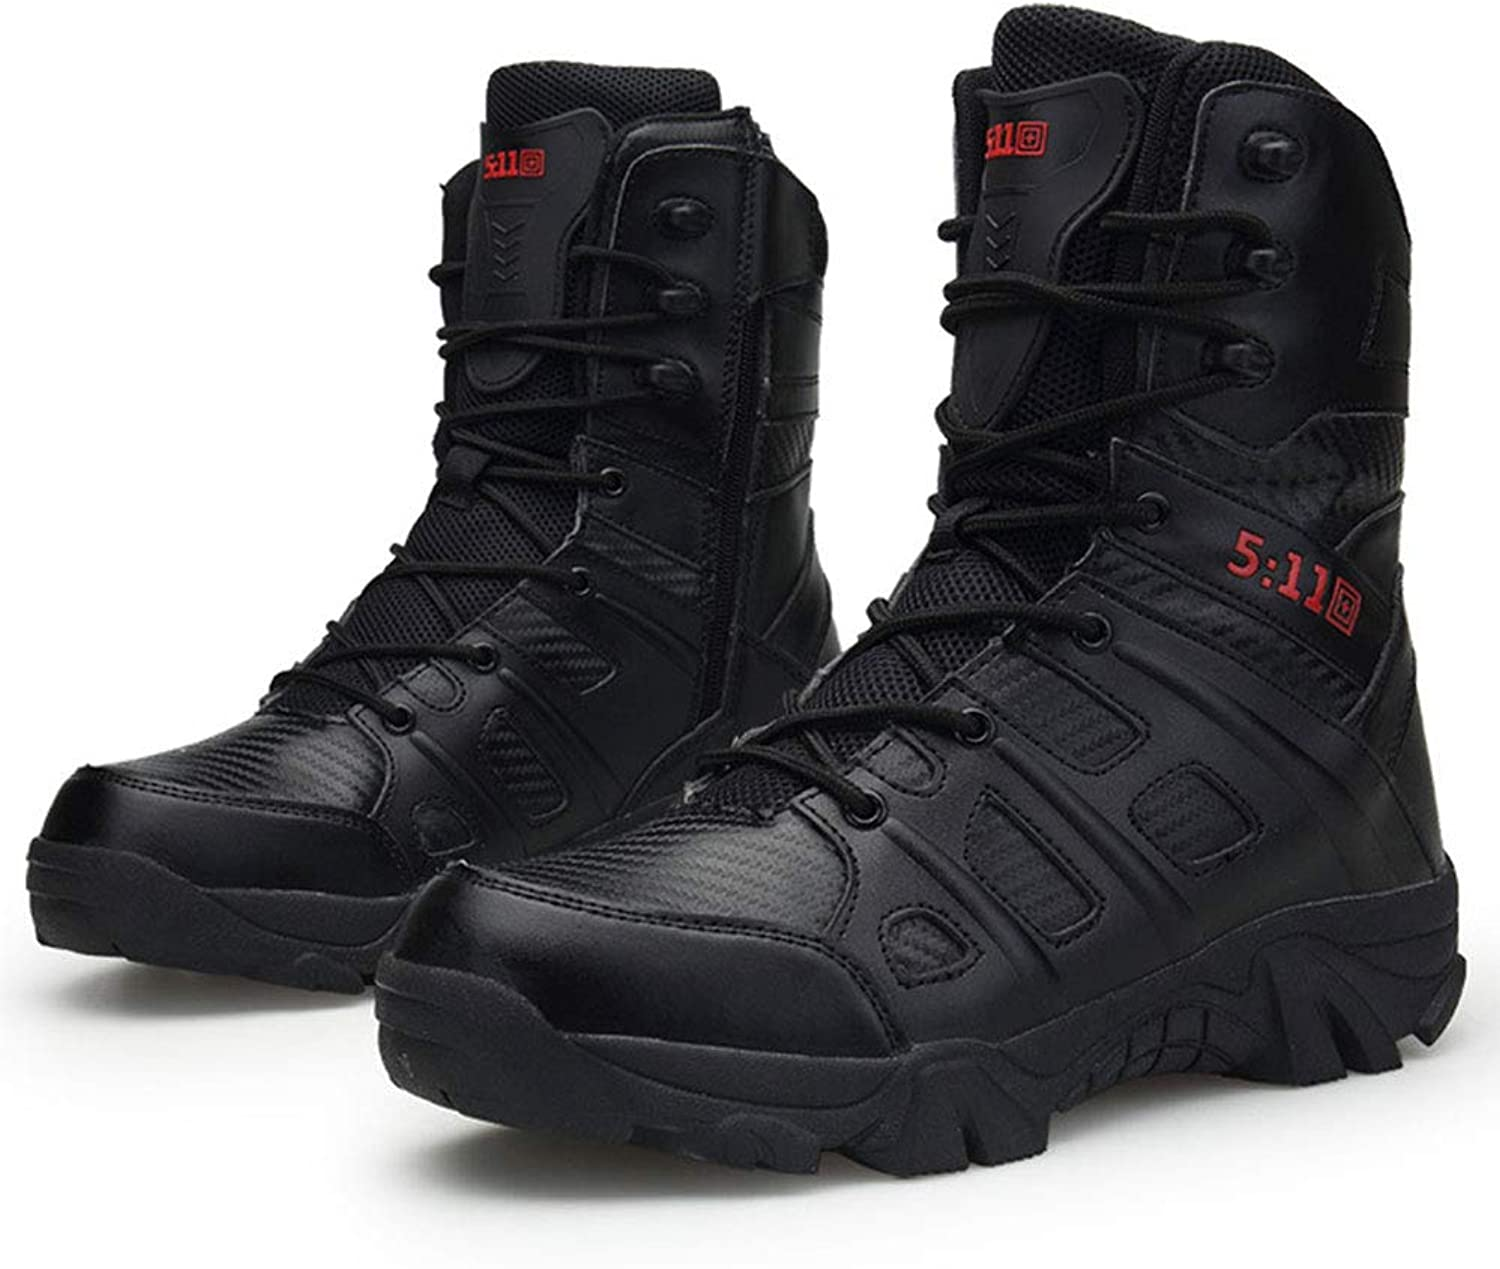 Military Army Tactical Boots Sports Camping Hiking Combat Lace Up Breathable High Top Side Zipper Desert Leather shoes Men Outdoor